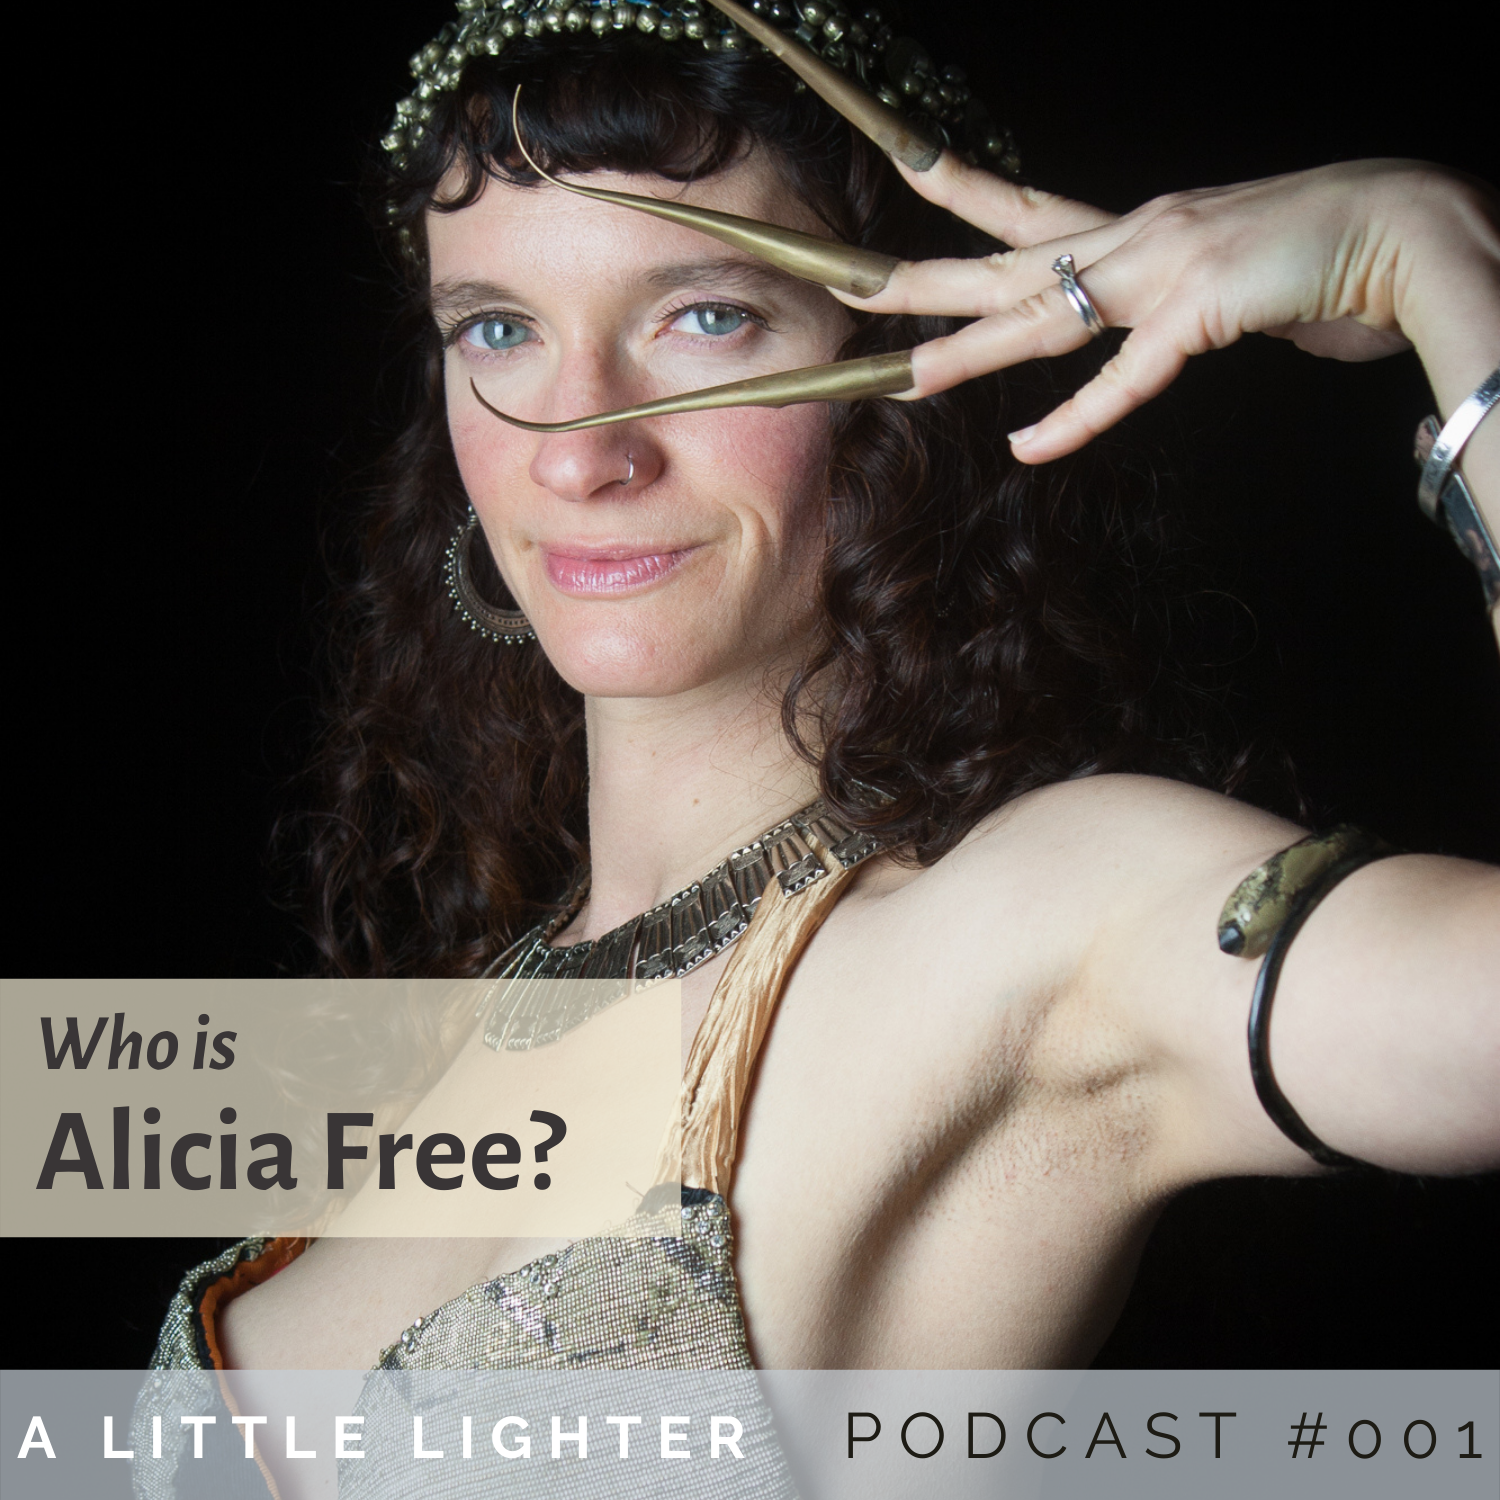 Belly Dance Podcast who is alicia free